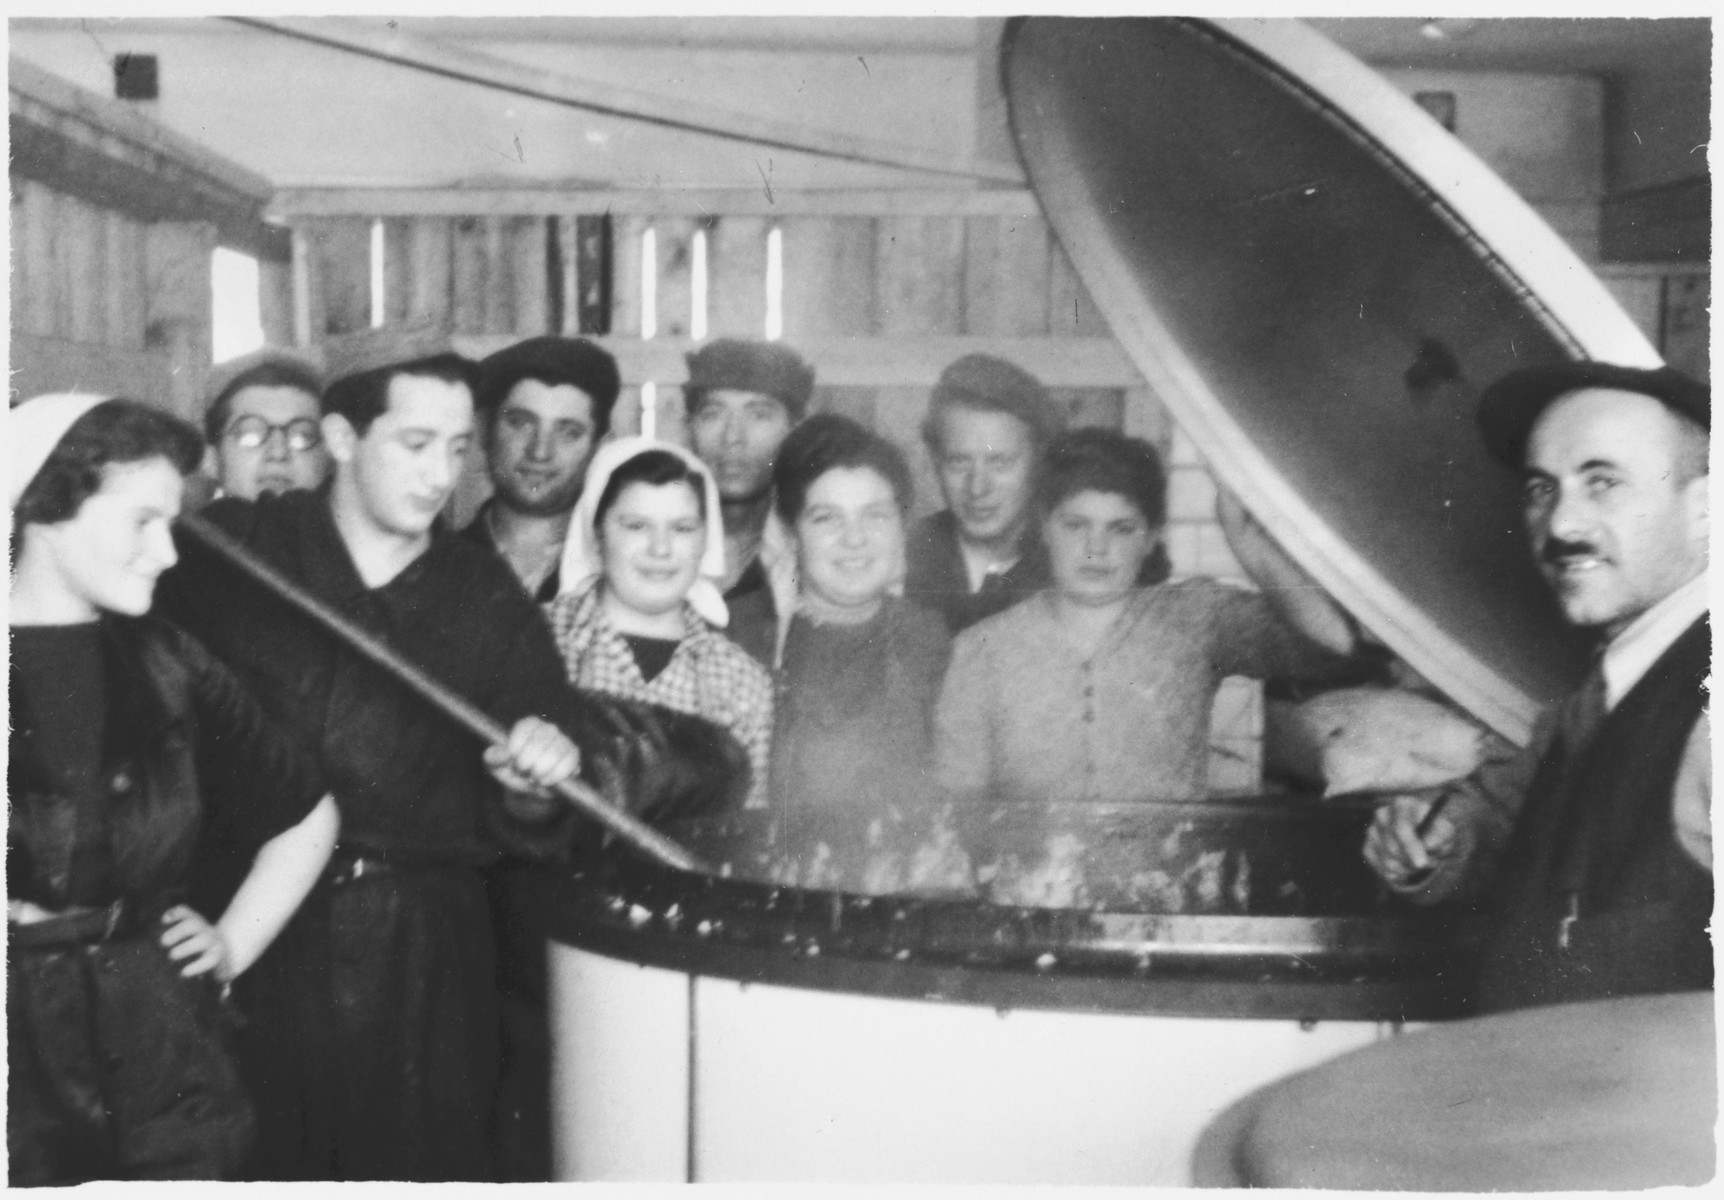 Group-portrait of workers in the kosher kitchen surrounding a large vat in what [probably is the Windsheim] displaced persons' camp.